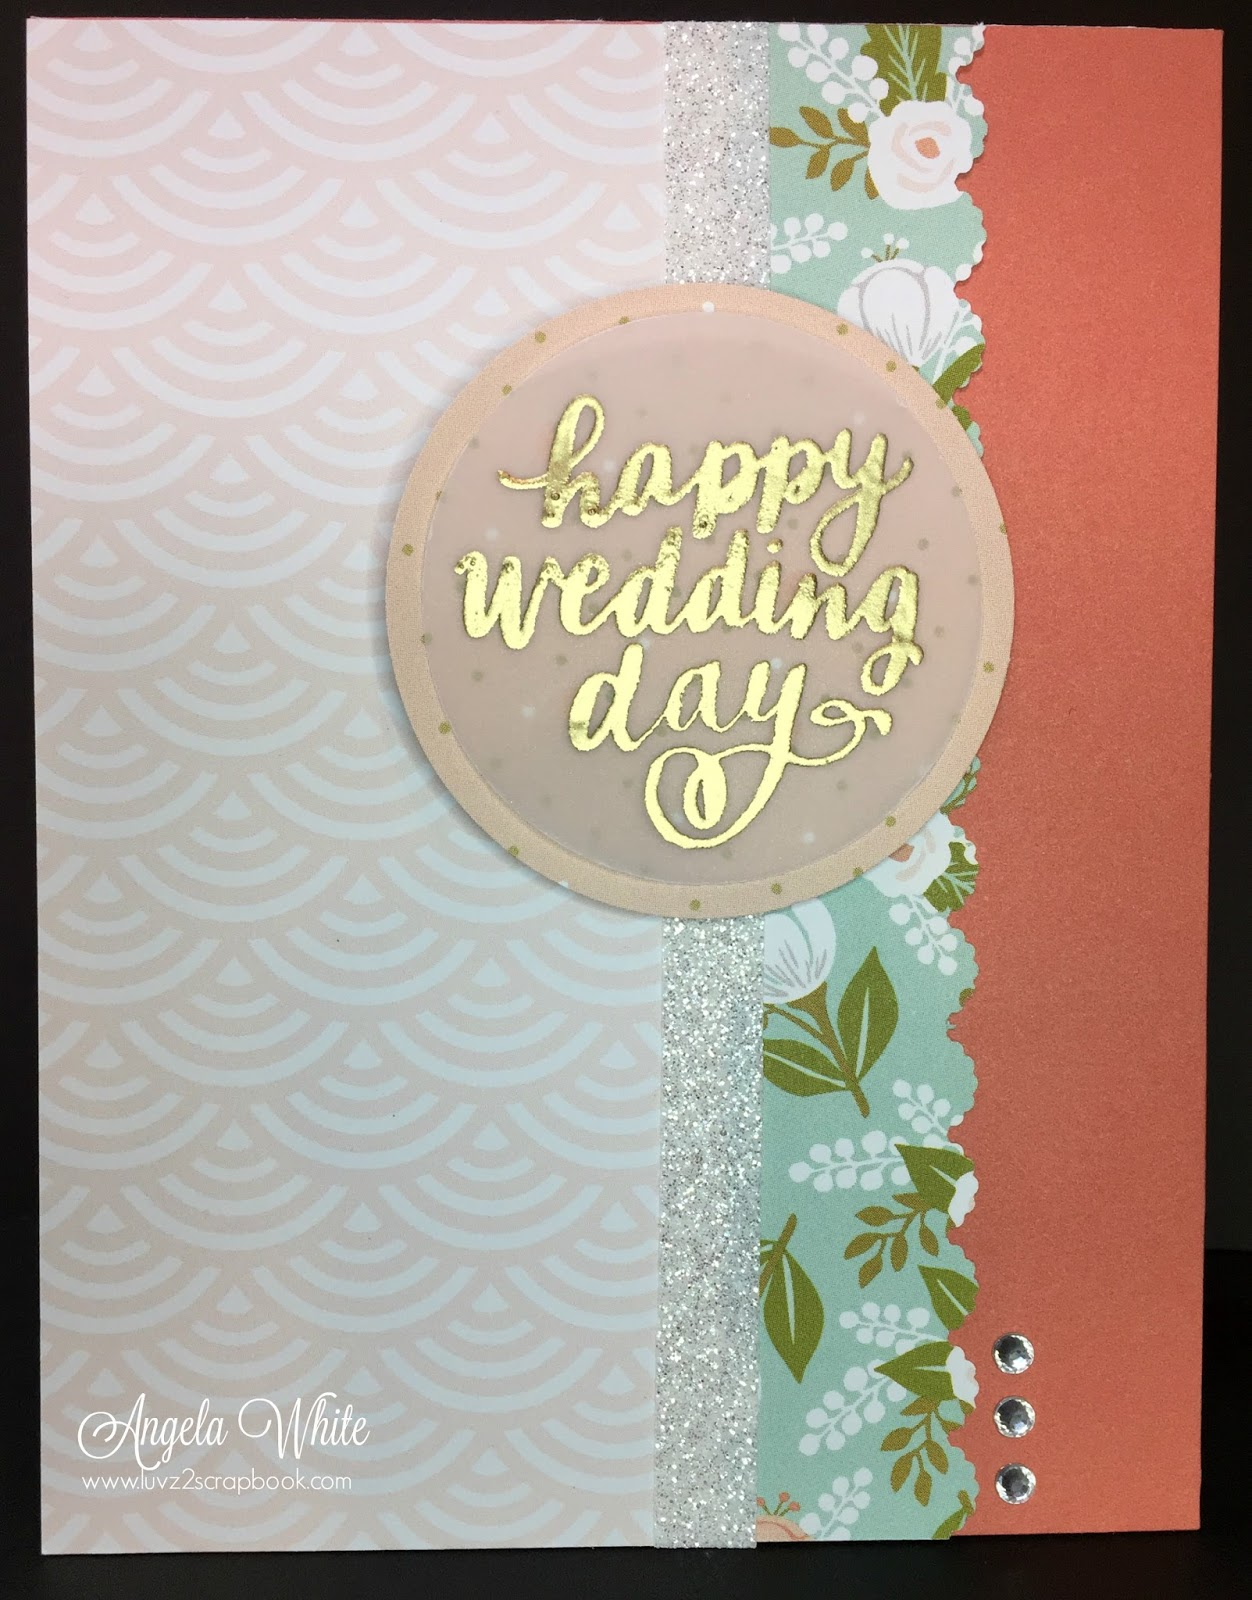 Weddings Are Big In Next Few Months So I Thought A Hello Lovely Wedding Card Would Be Great To Create